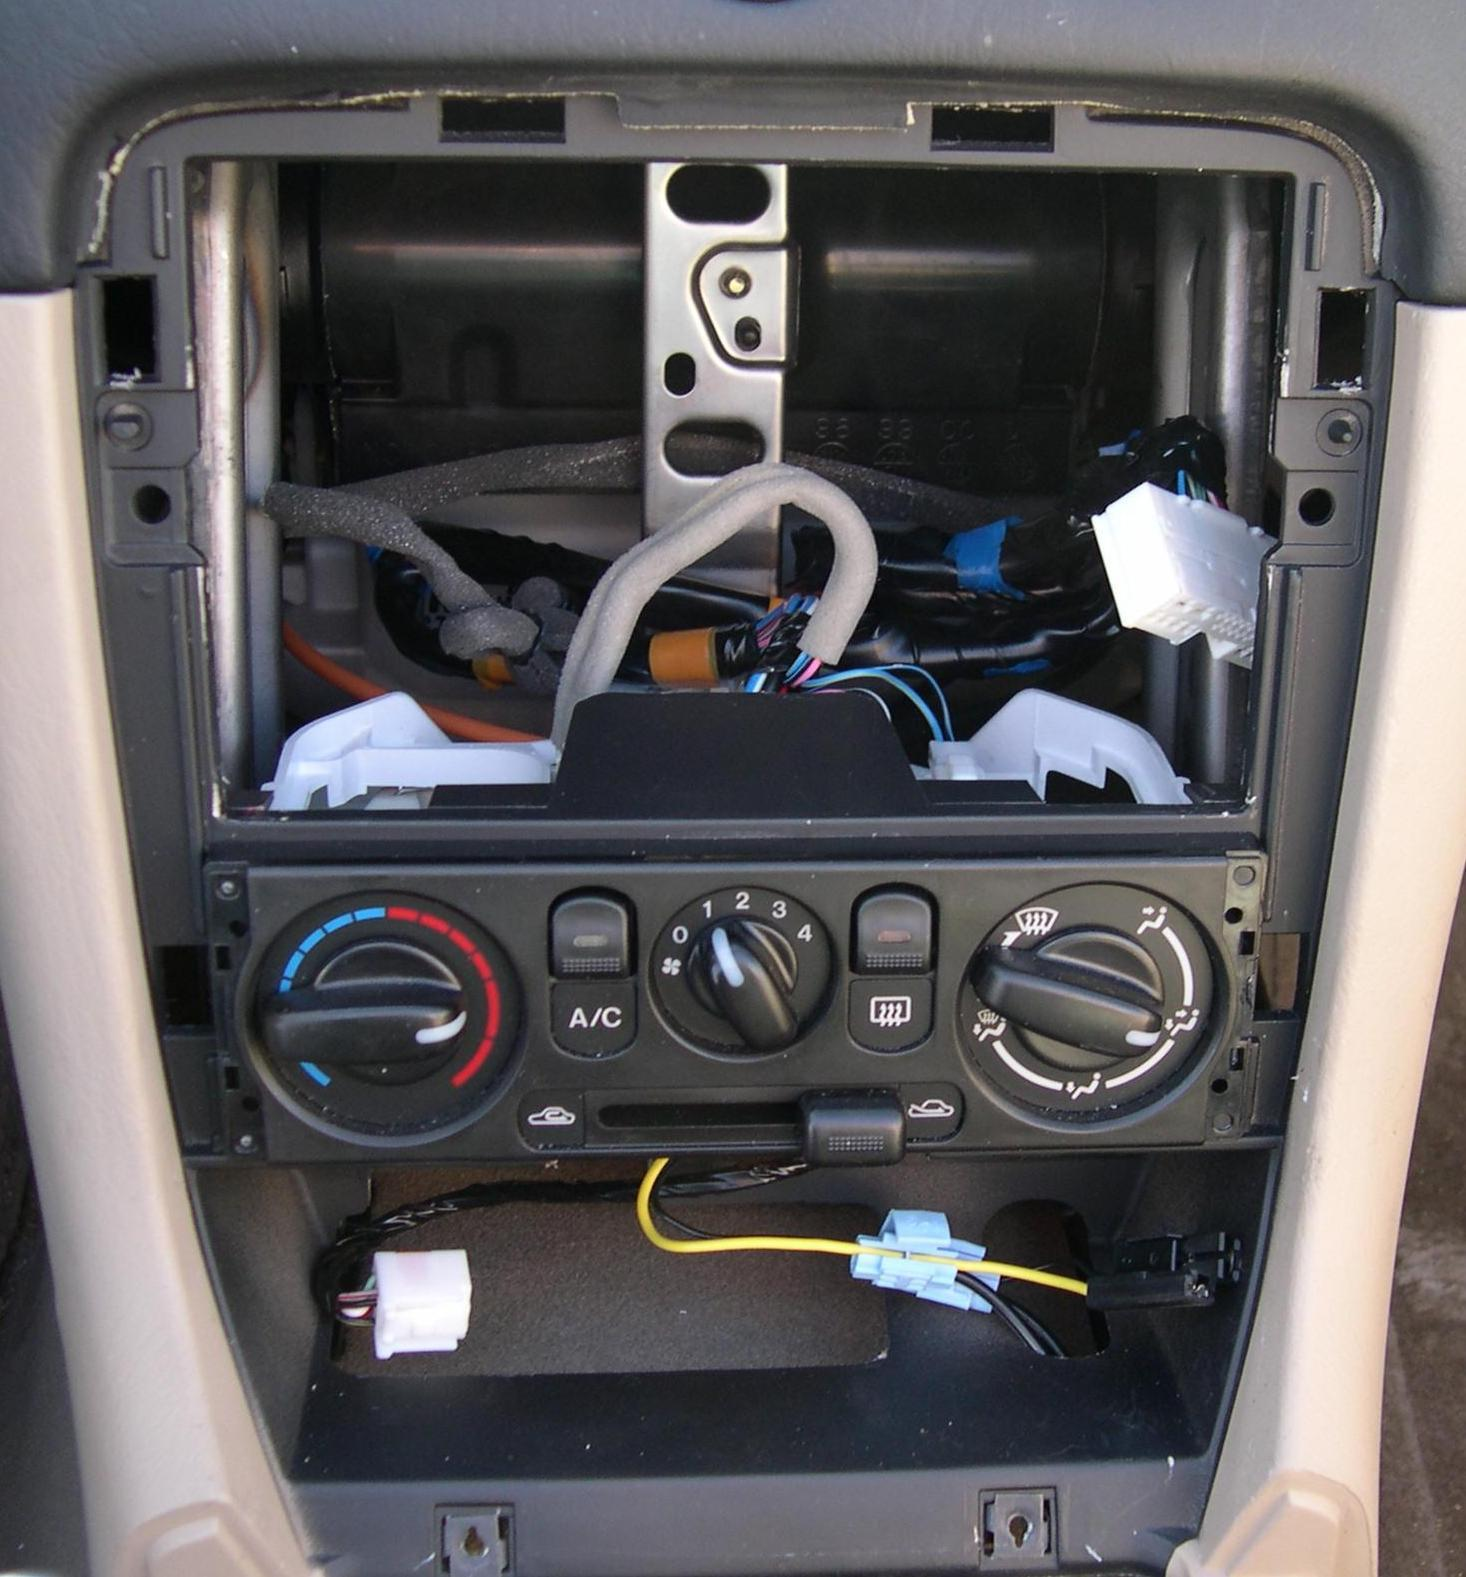 the mazda nb oem audio system faq 2001 radio out photo stephen foskett